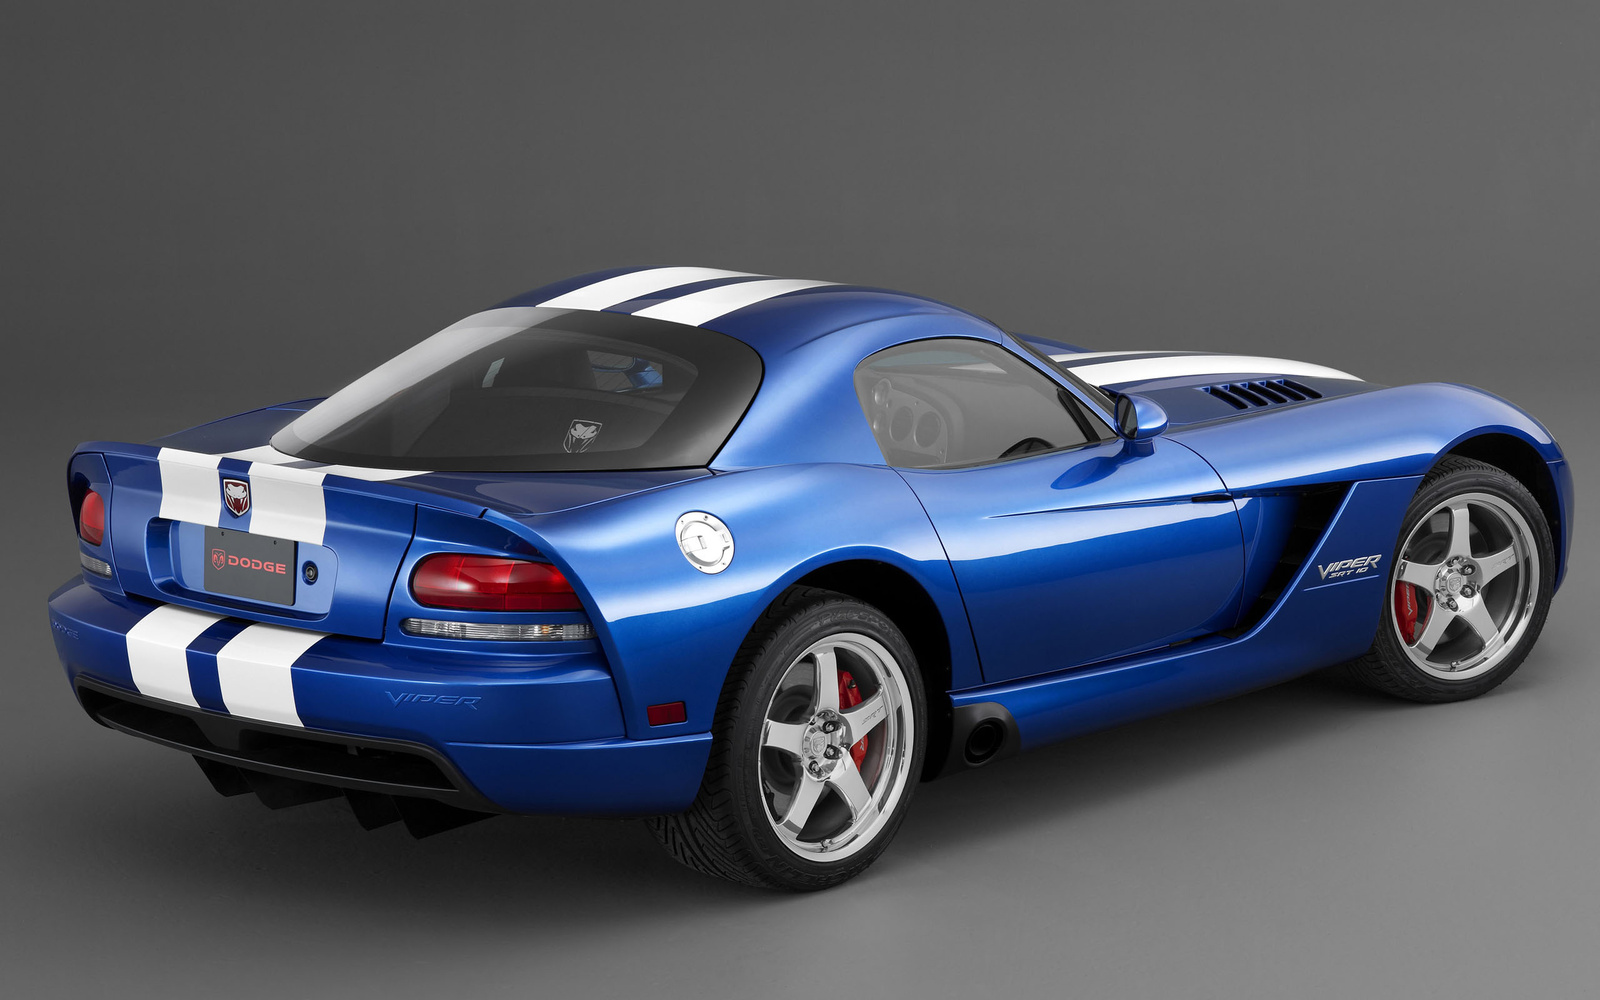 2009 Dodge Viper SRT10 Coupe picture